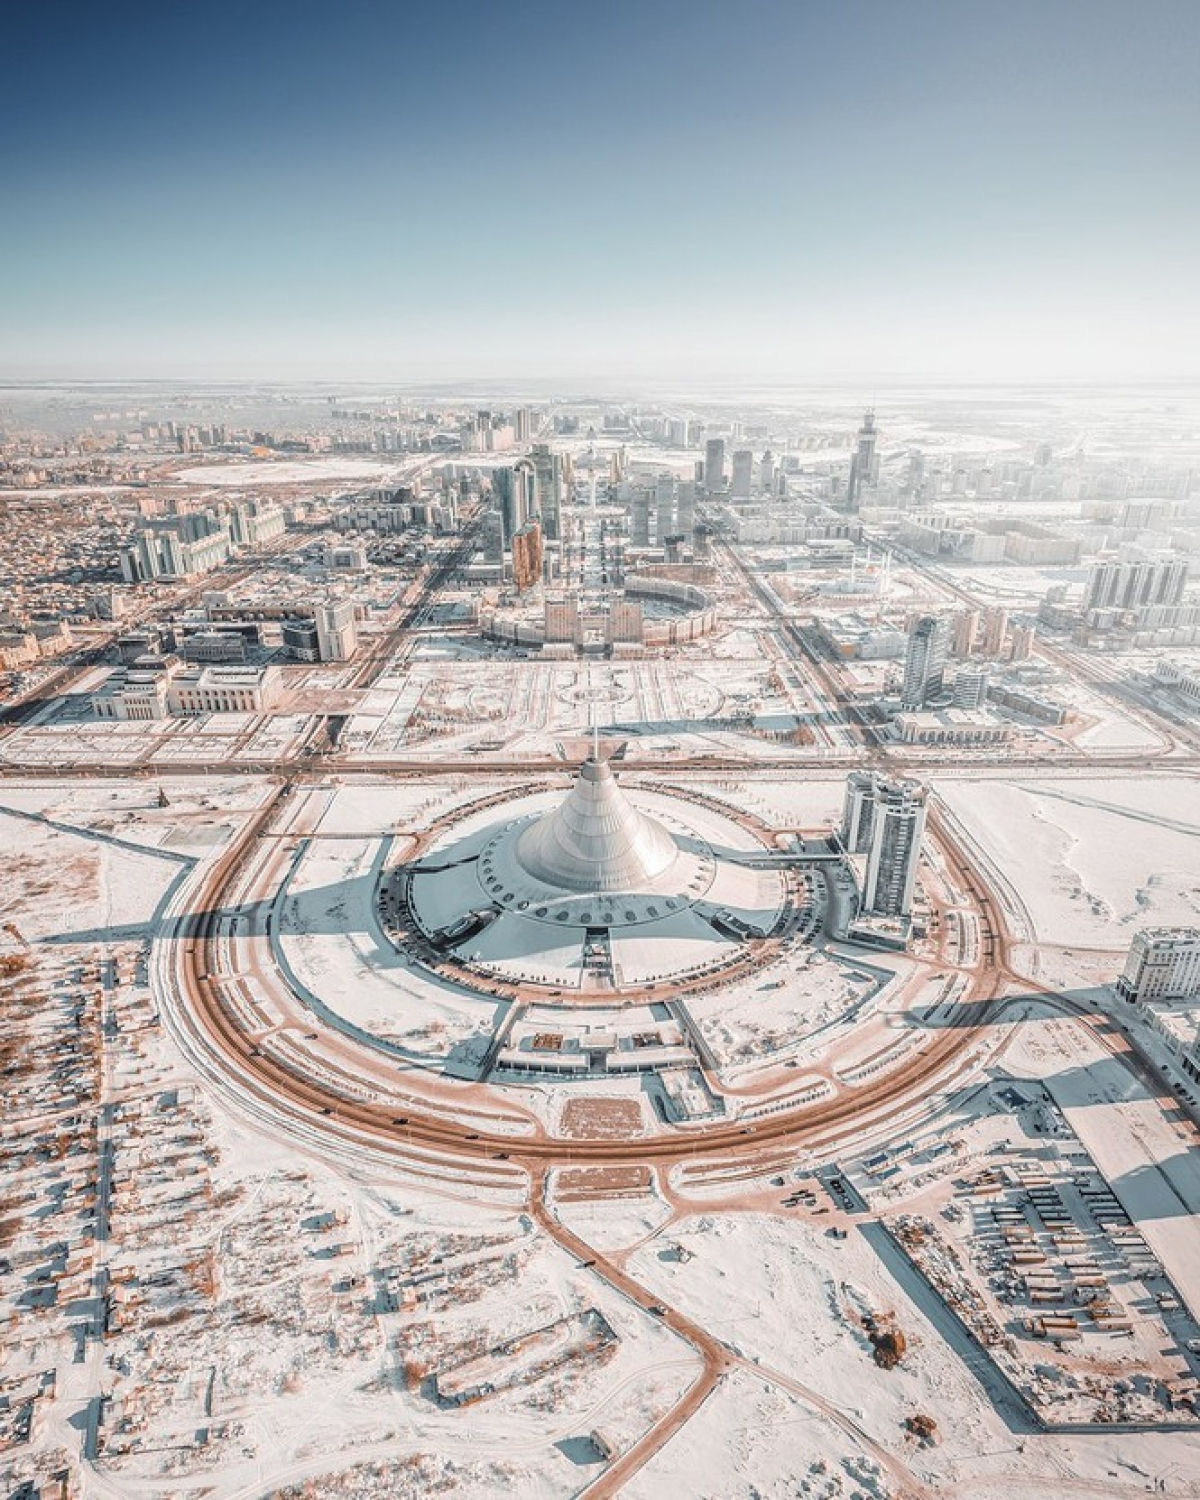 'Winter in the city of Nur-Sultan' by @andrei_pugach of Russia